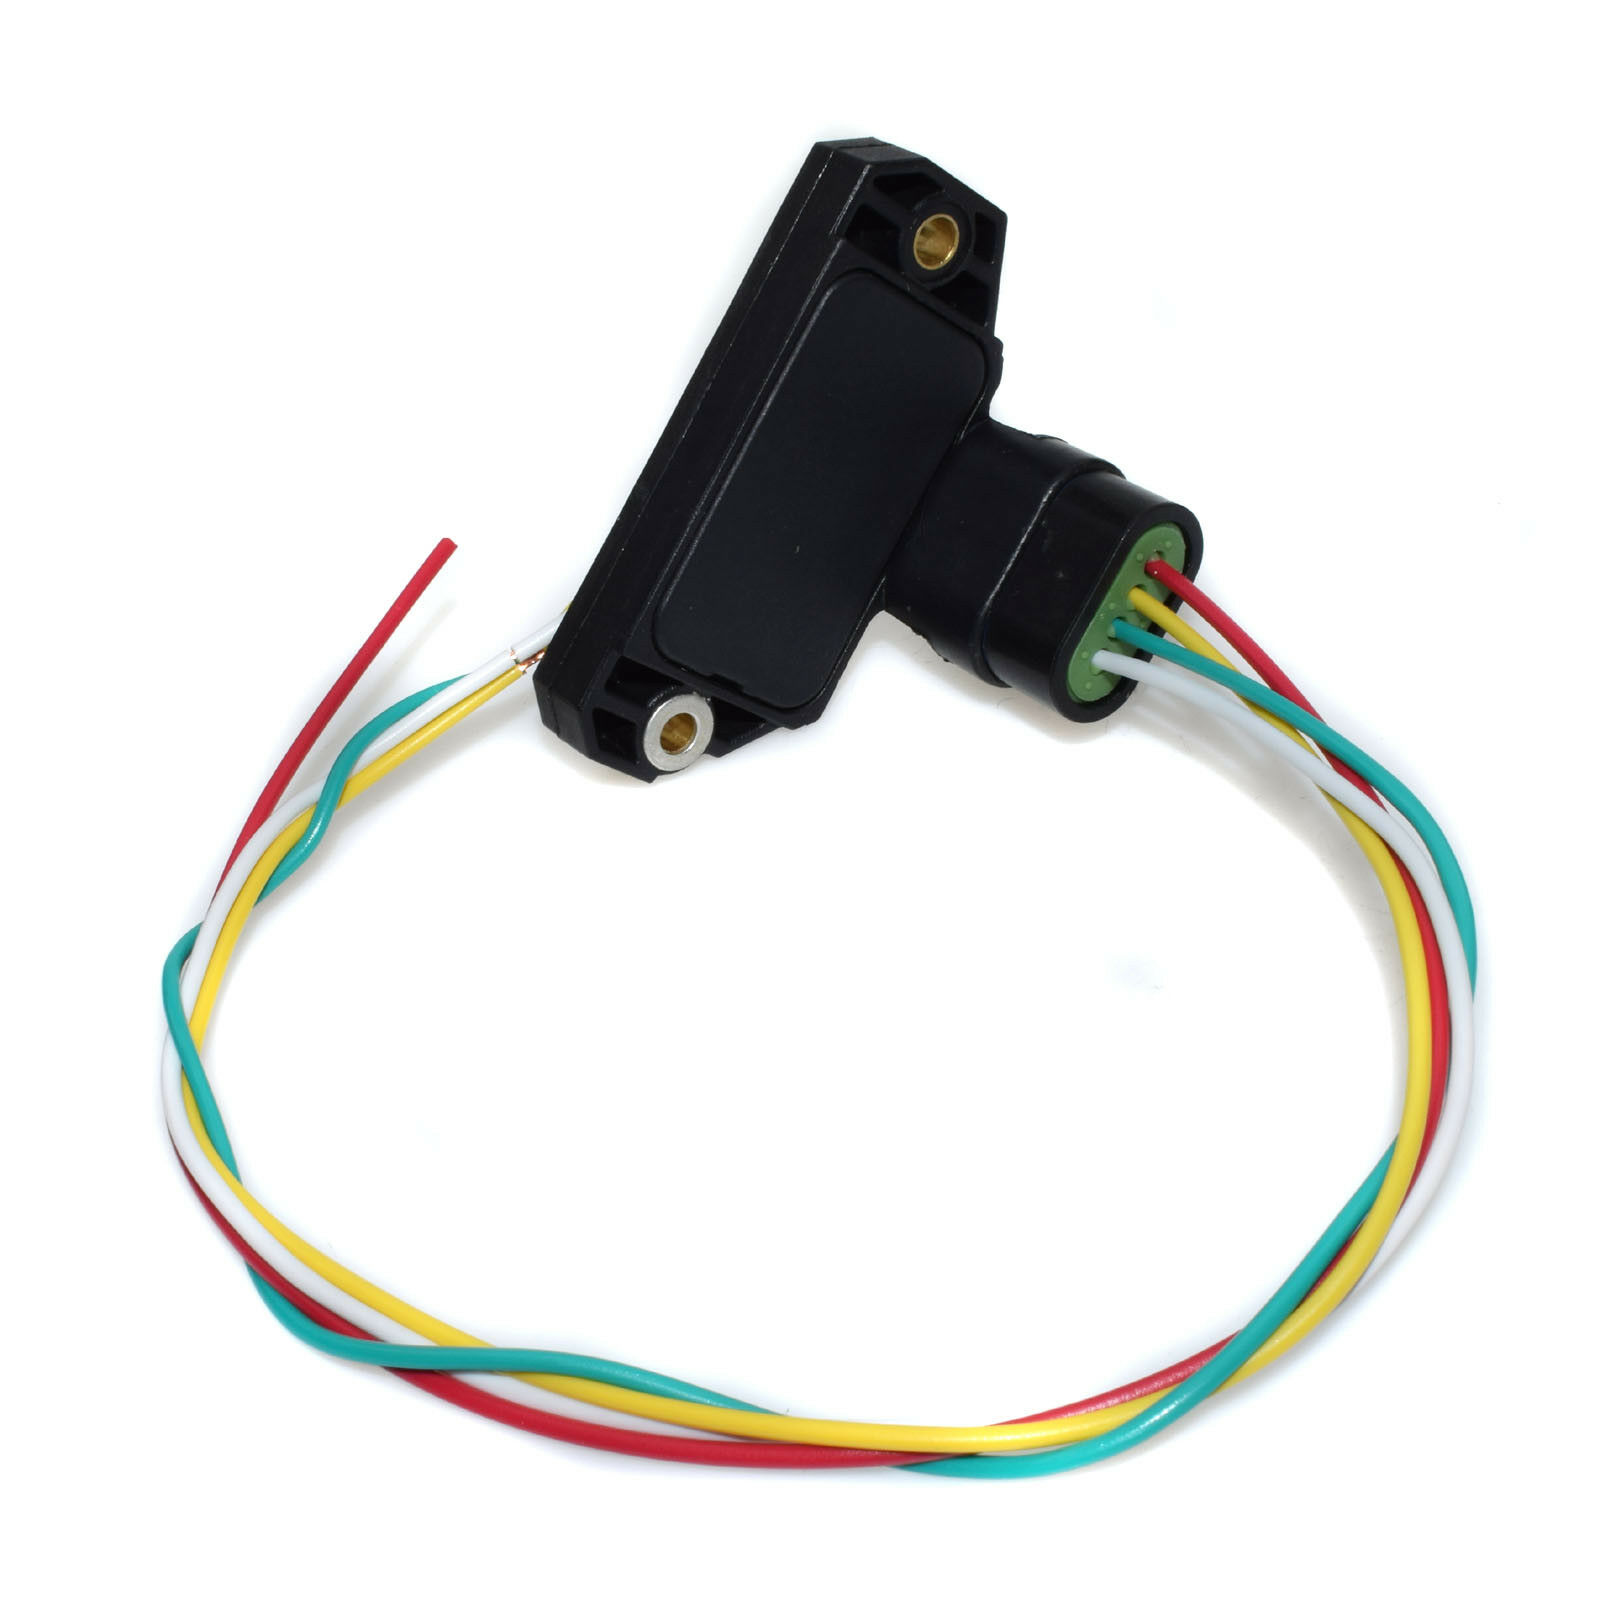 Ignition Control Module With Connector For Gm Buick Chevrolet Gmc 78 Hei 1 Of 9free Shipping